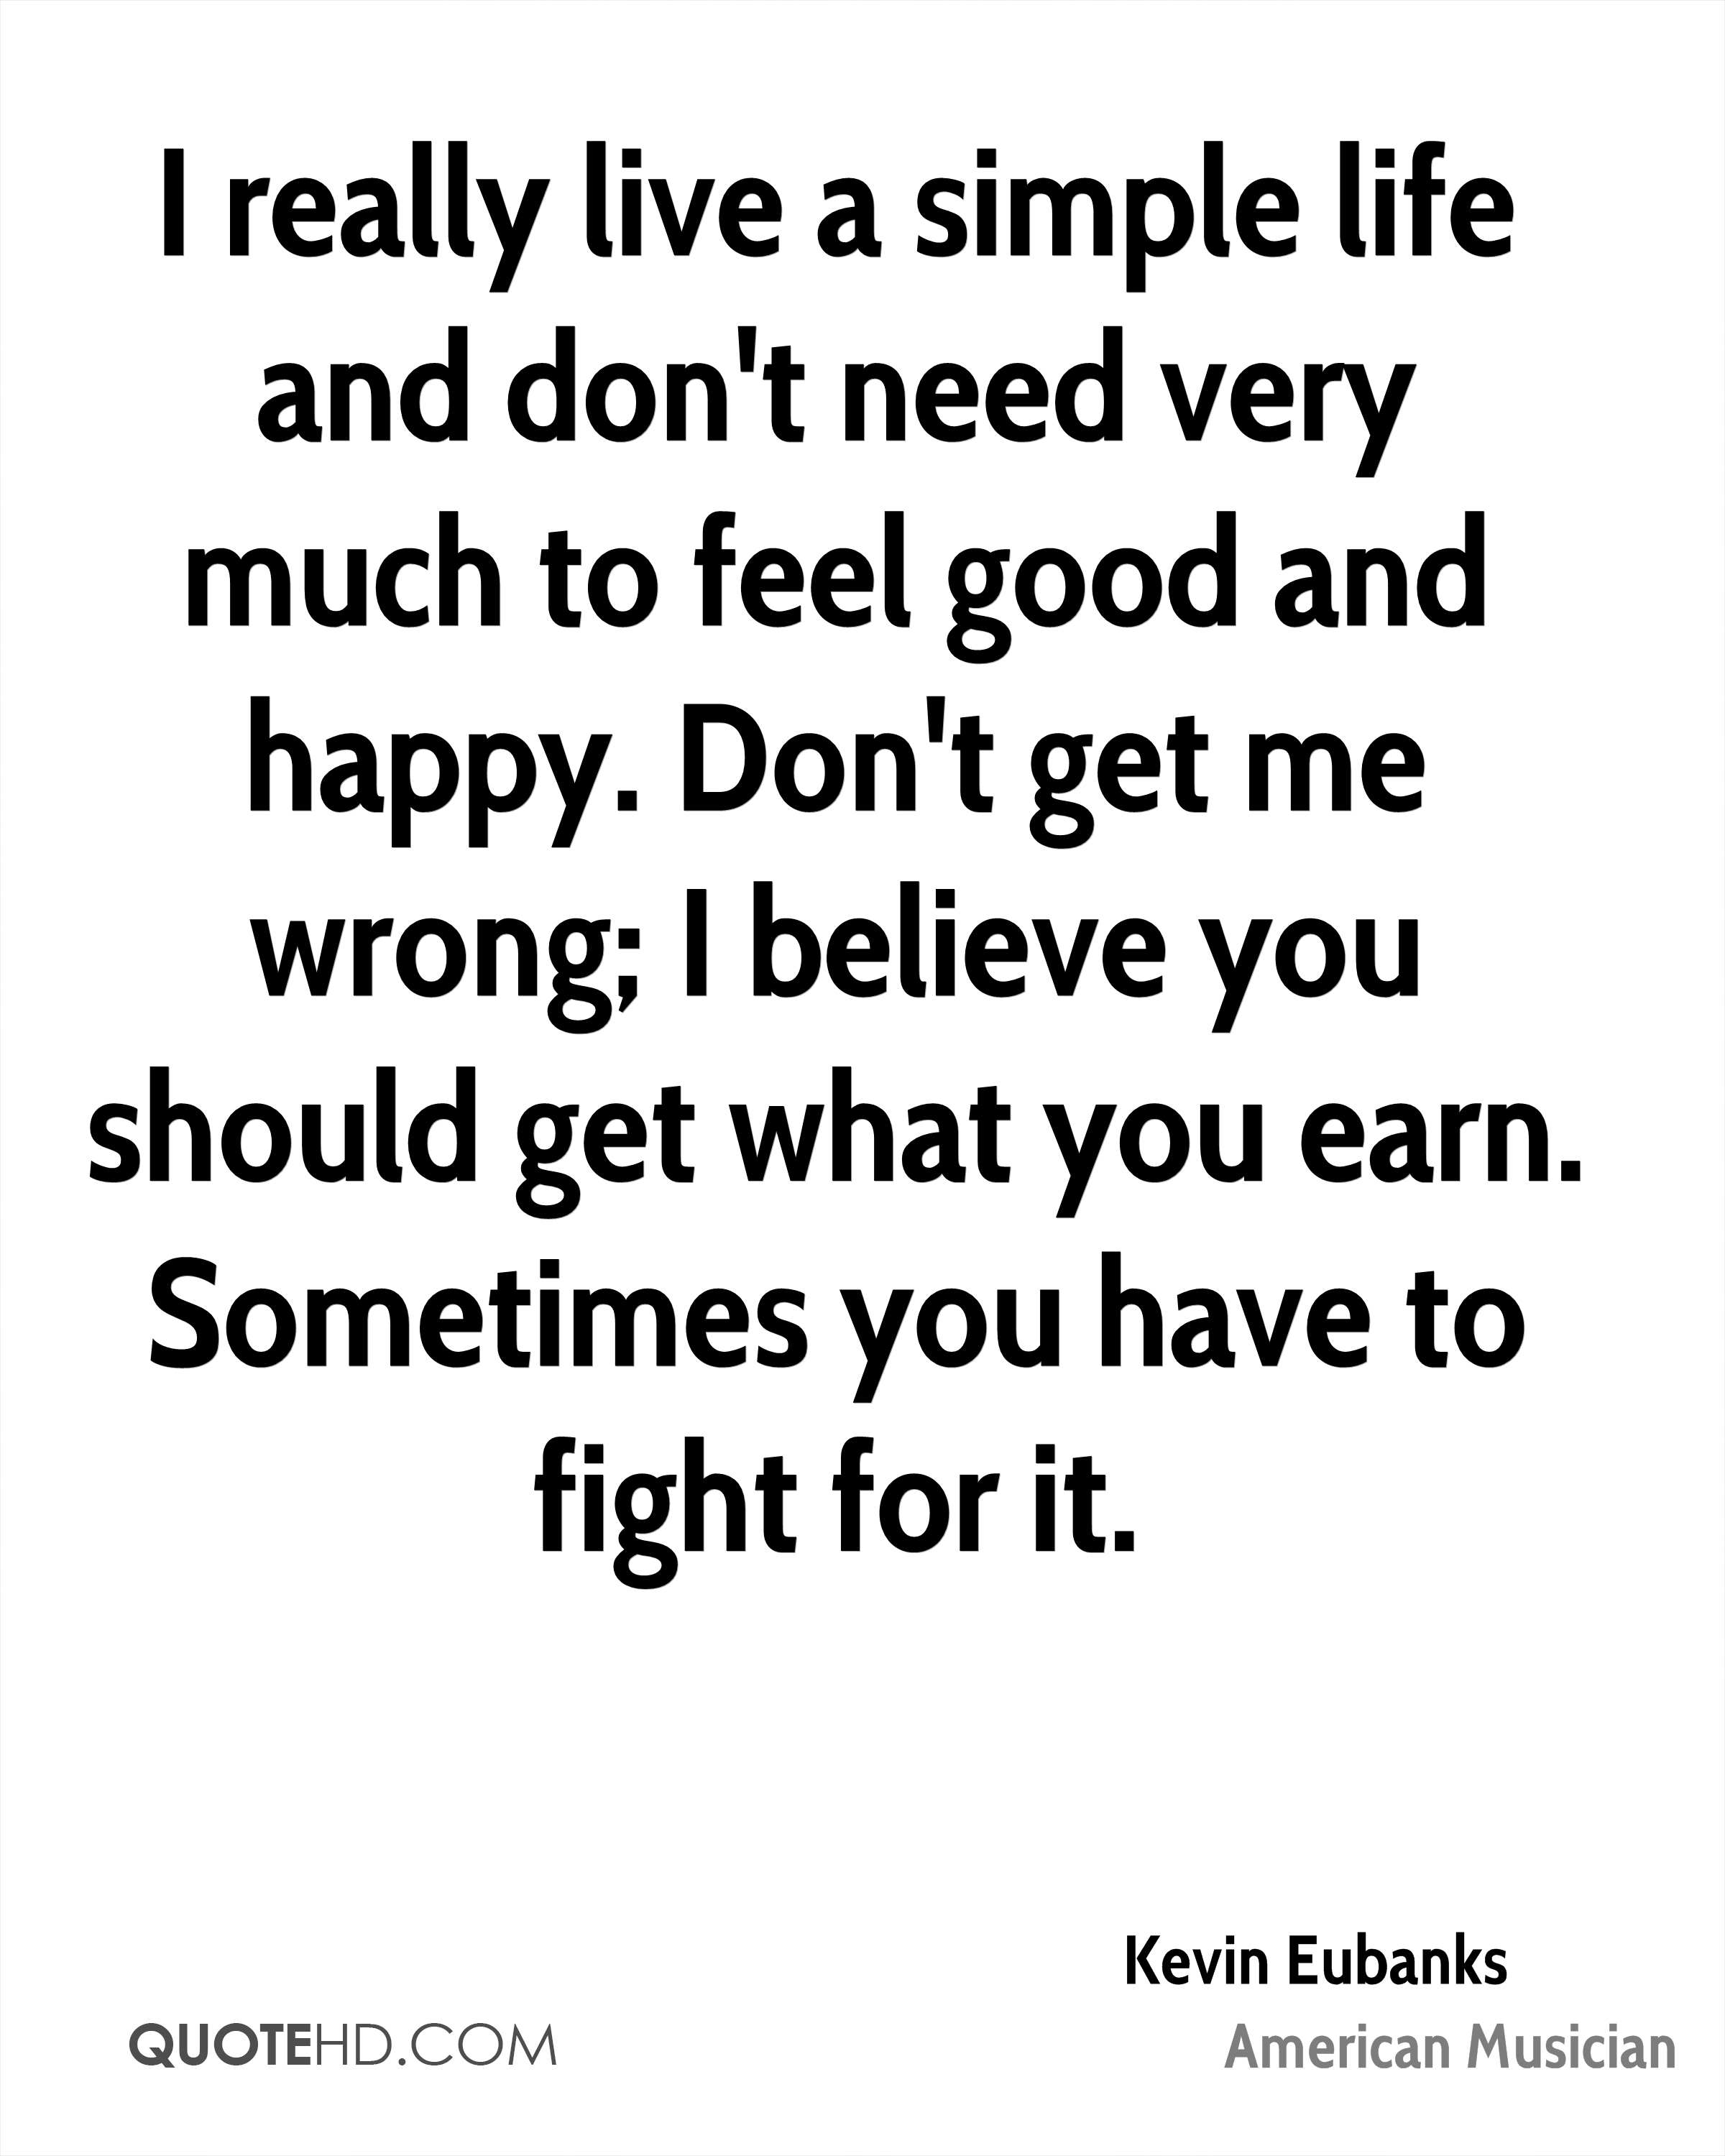 Easy Quotes To Live By: Kevin Eubanks Life Quotes